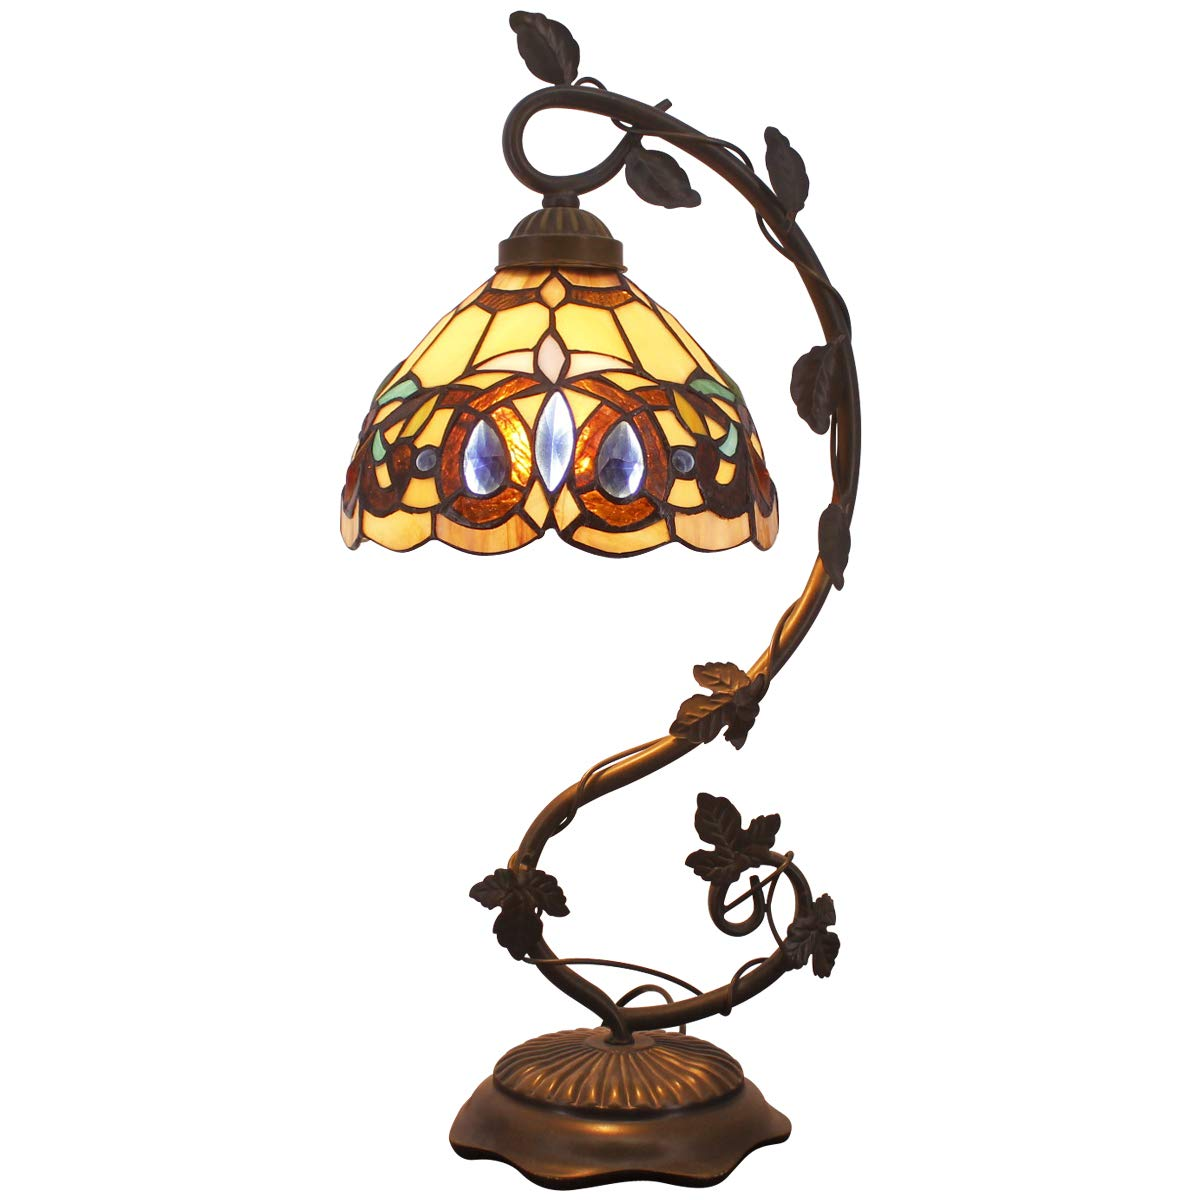 Tiffany Desk Lamp Stained Glass Serenity Victorian Style Table Lamps Wide 8 Inch Height 21 Inch for Living Room Antique Desk Beside Bedroom Set S021 WERFACTORY